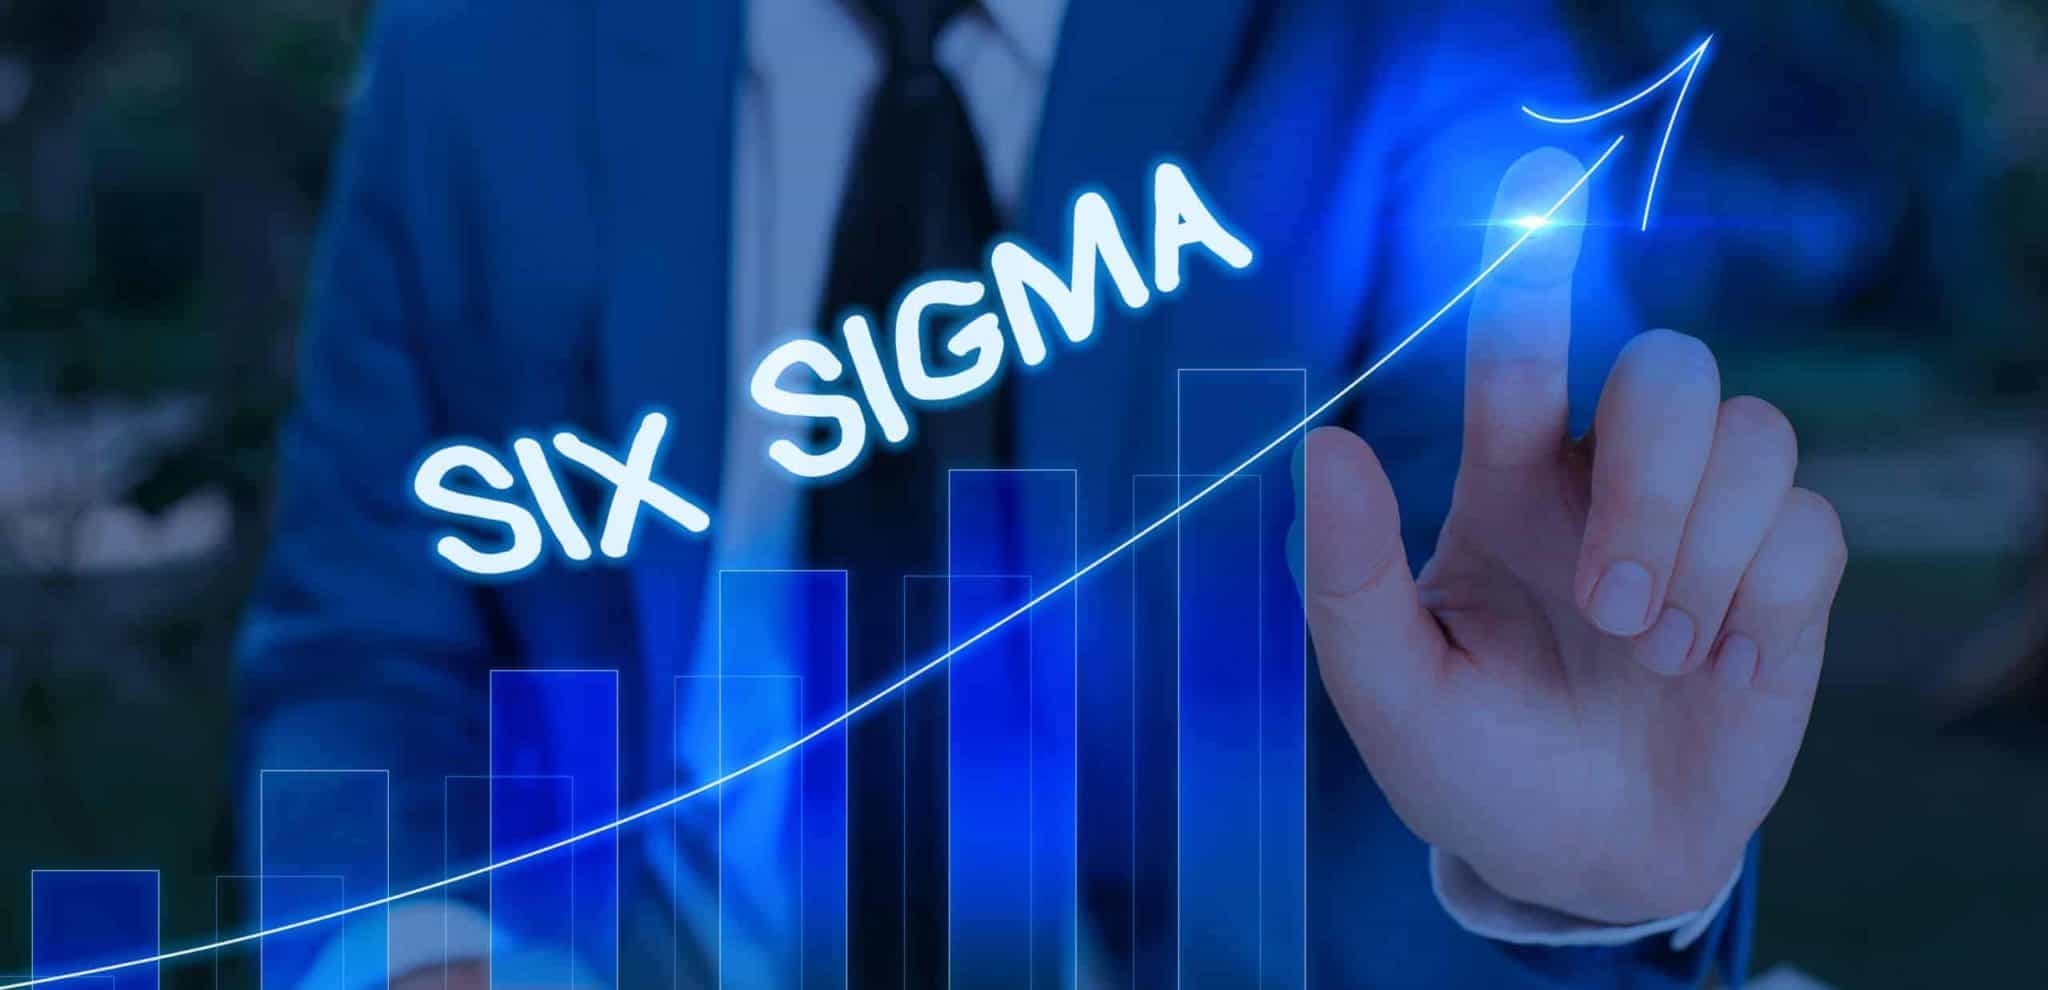 Are You Ready for Six Sigma?